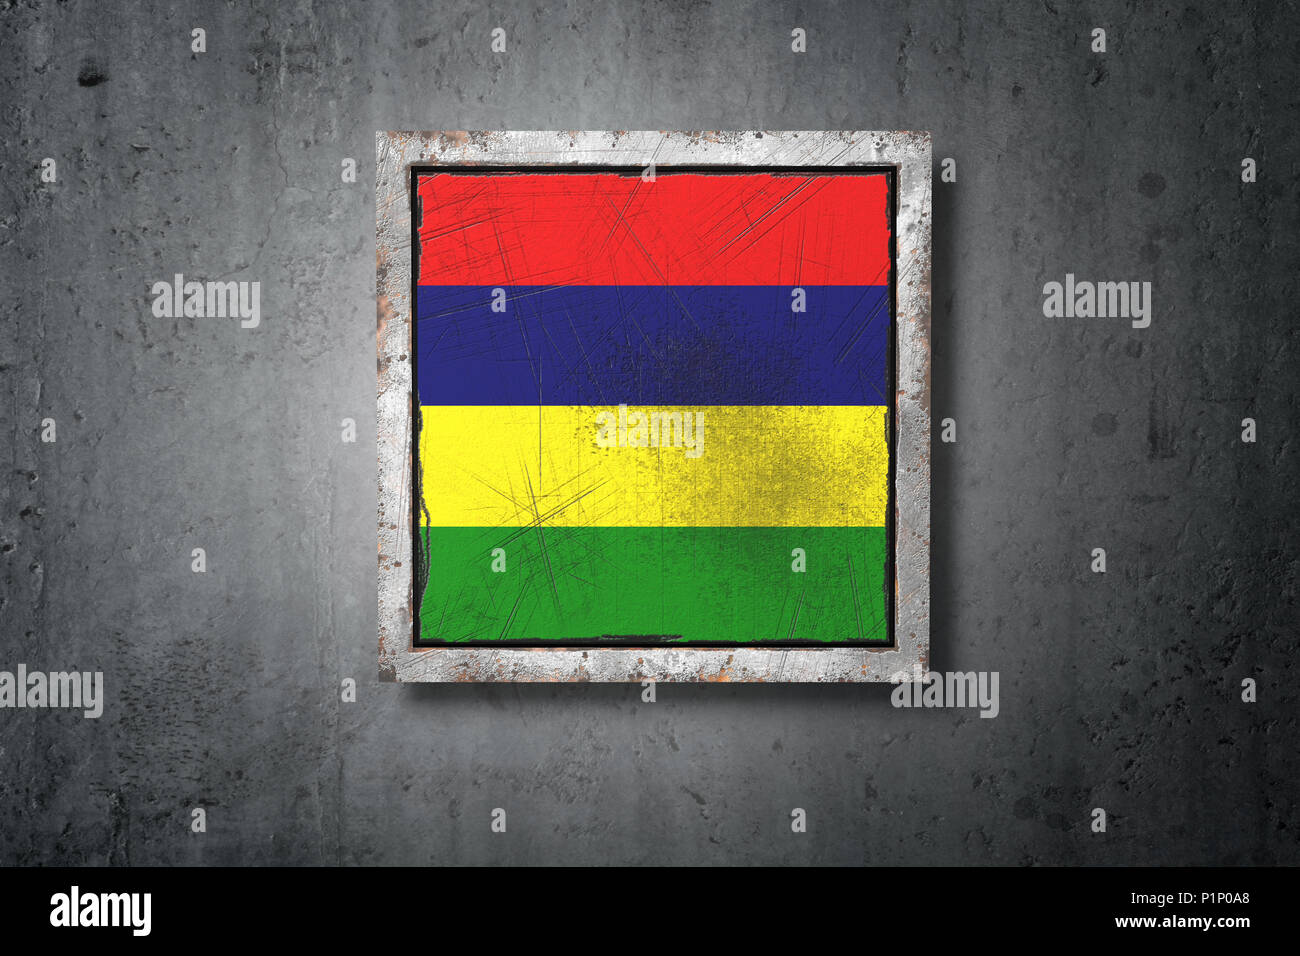 3d rendering of an old Republic of Mauritius flag in a concrete wall - Stock Image